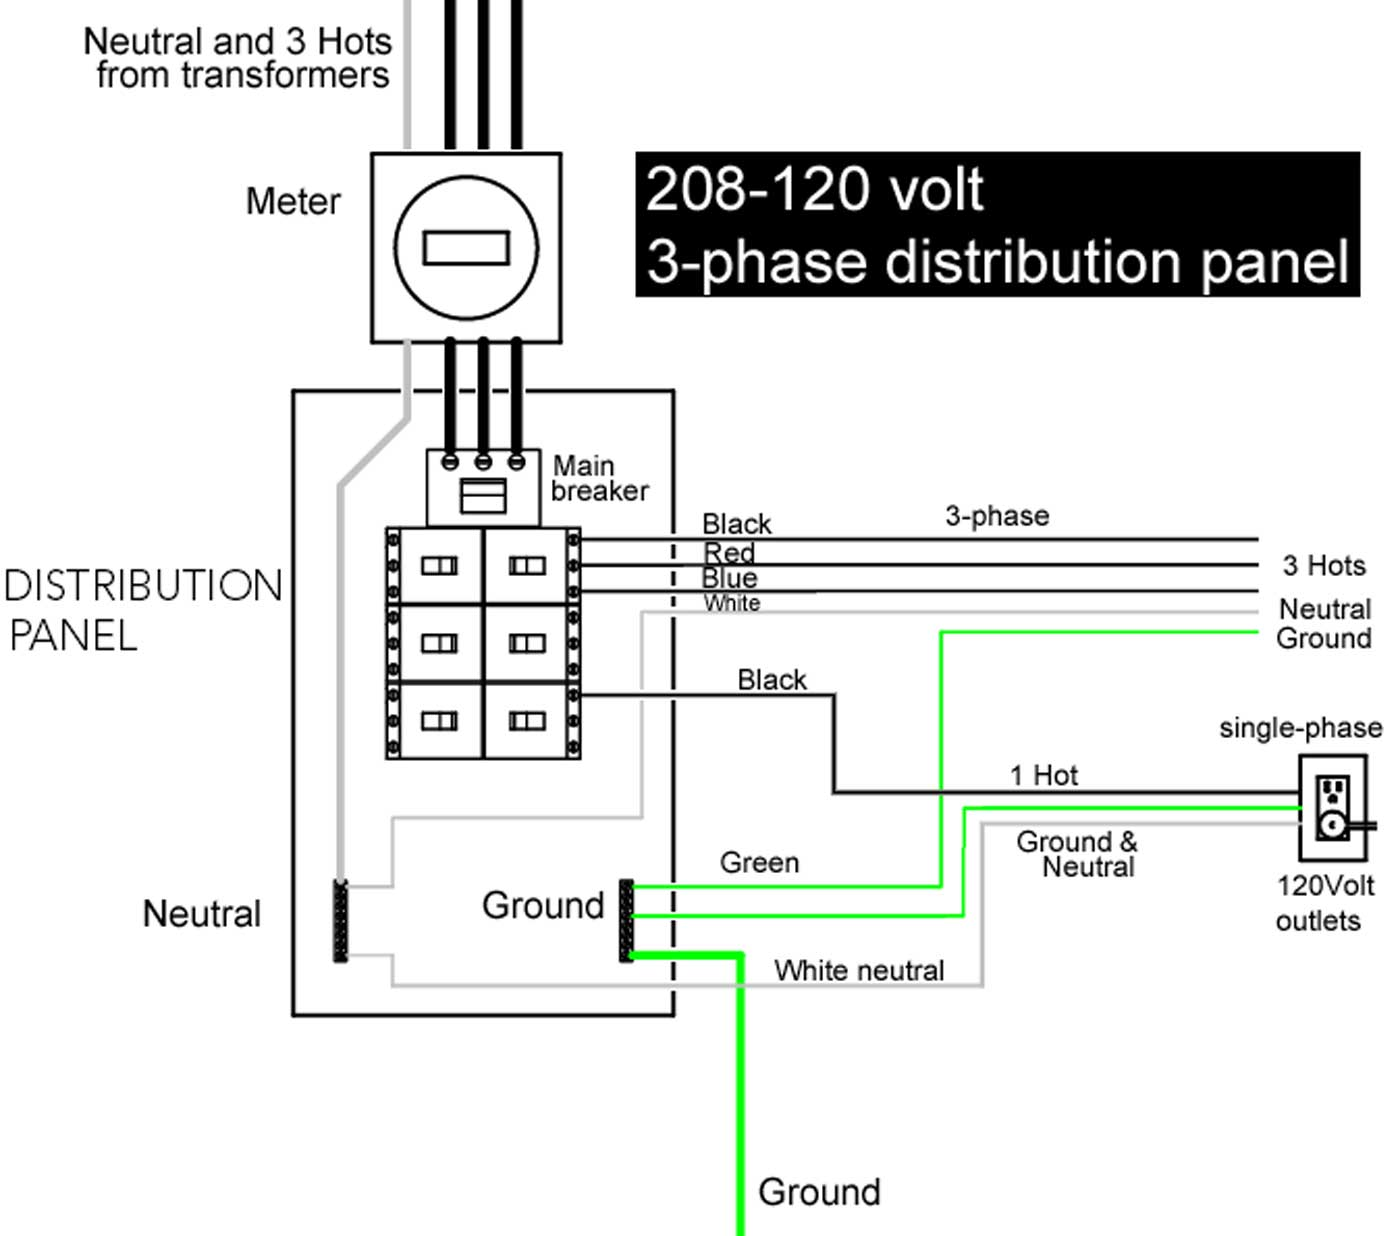 3 phase distribution panel how to wire 3 phase 120 volt outlet diagram at gsmx.co